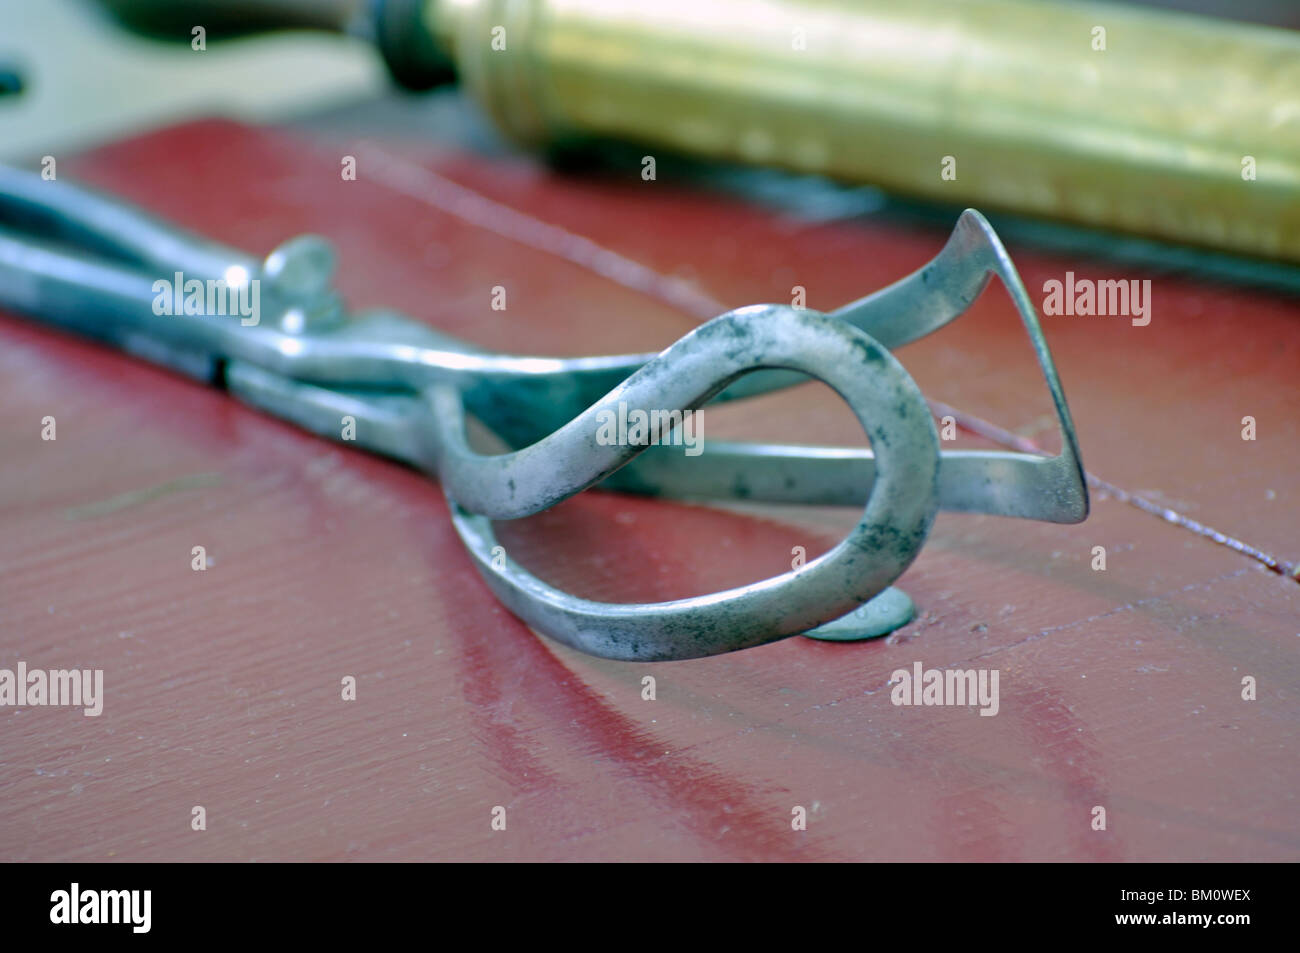 Forceps, old birthing medical instrument used during labor to help remove the fetus from the birth canal - Stock Image